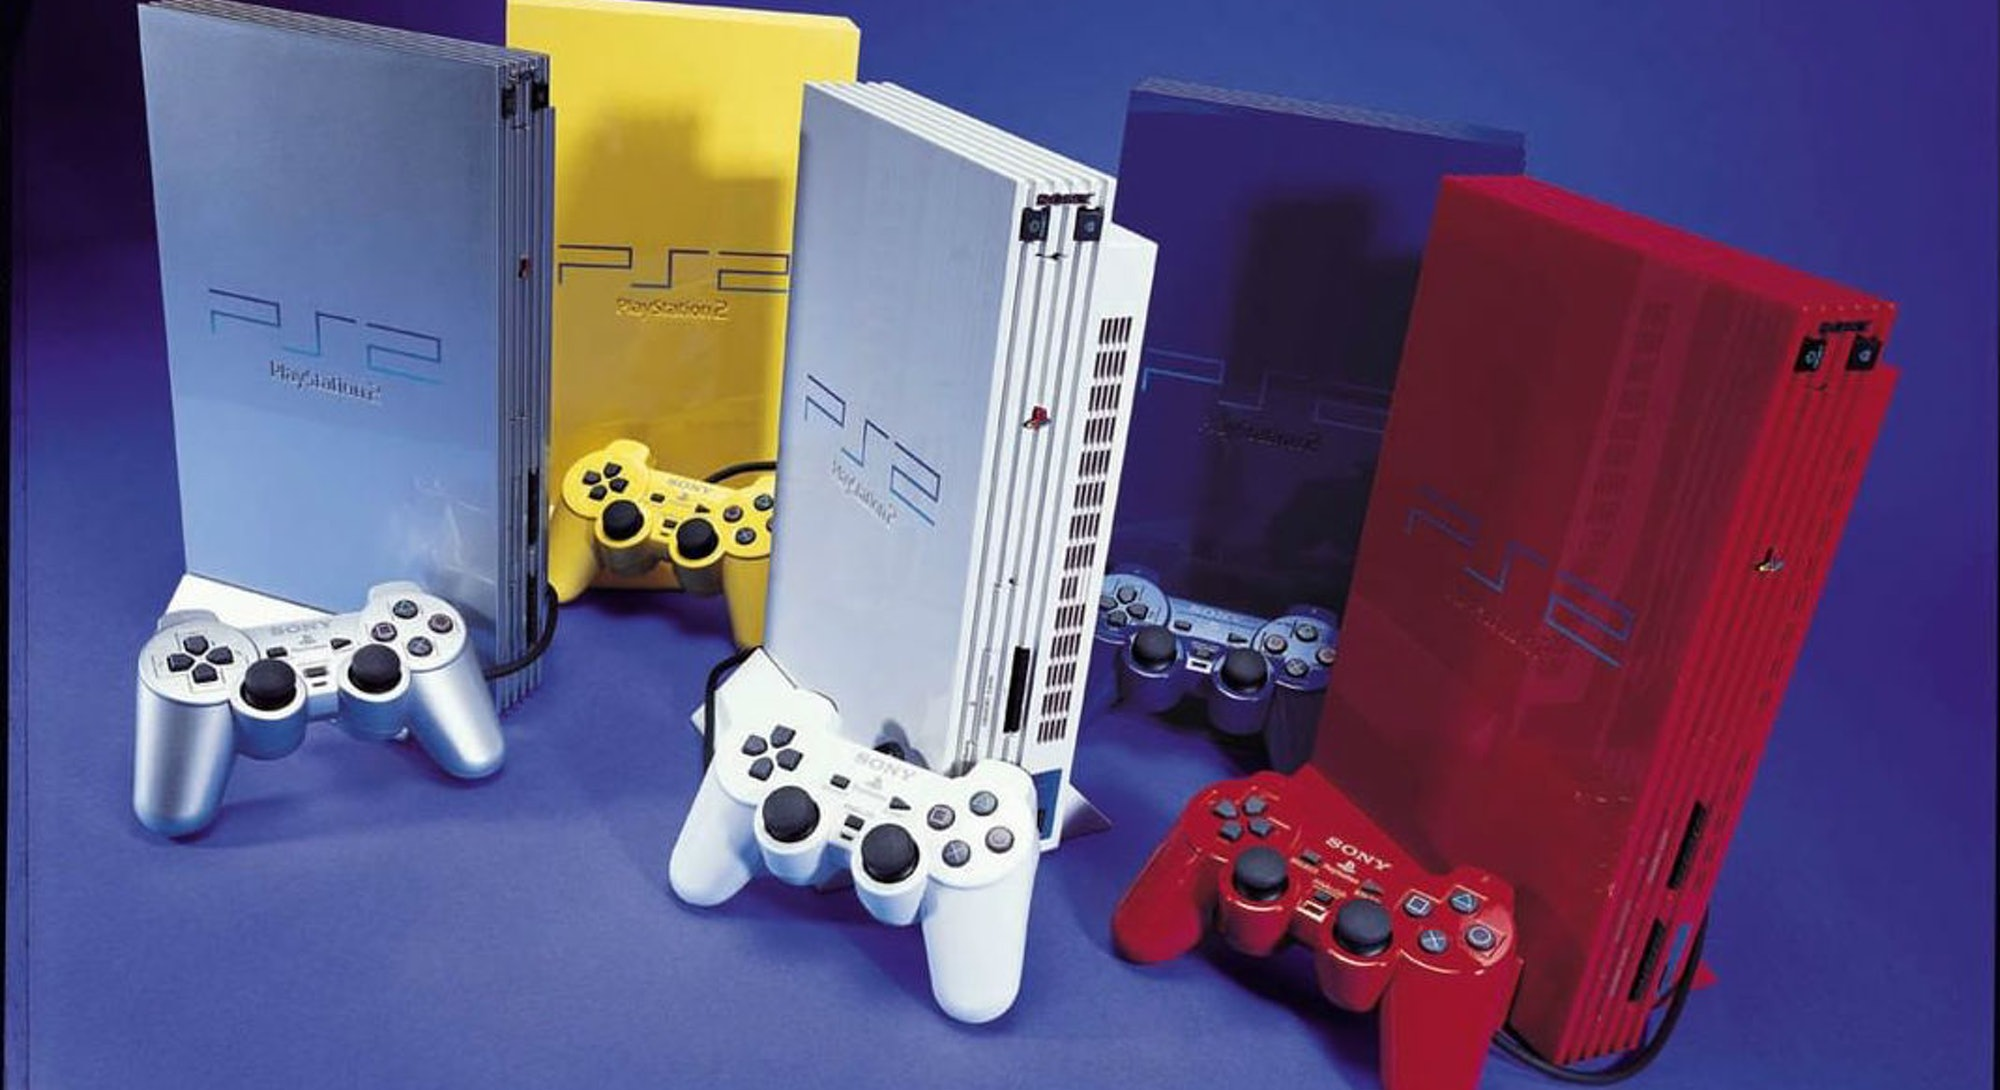 sony playstation 2 consoles in multiple colors